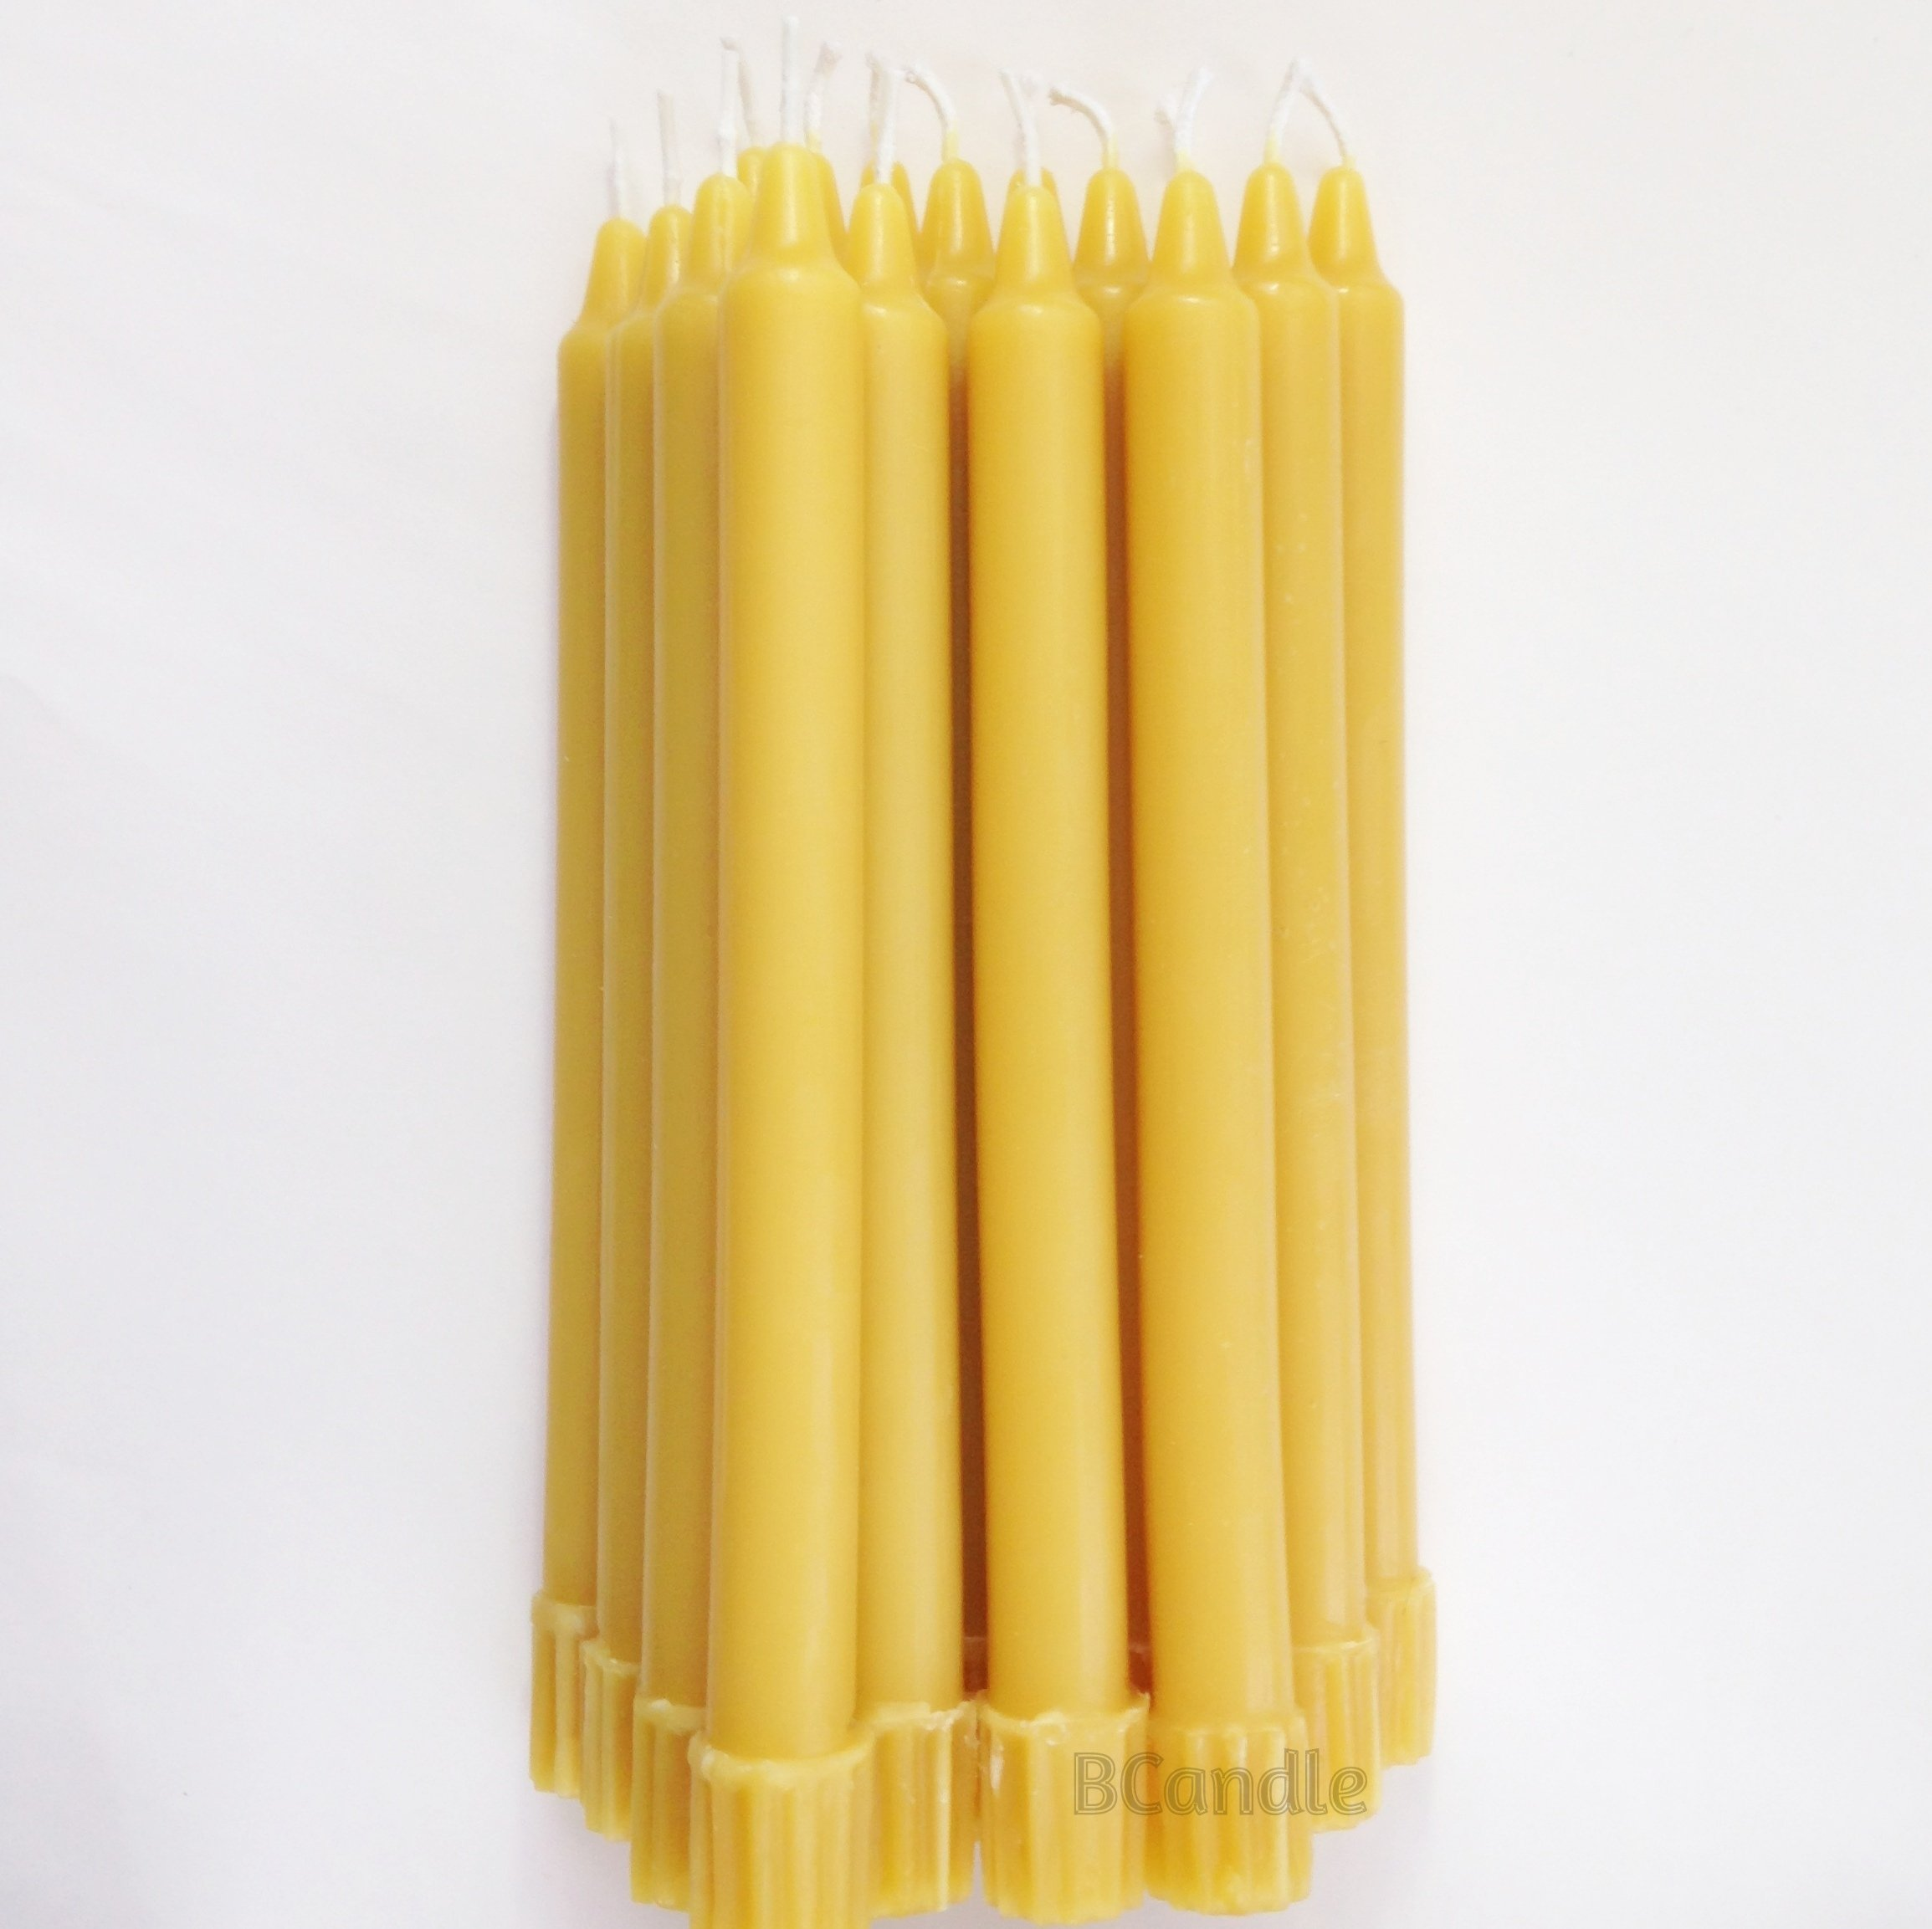 BCandle 100% Pure Beeswax Candles (Set of 16) 8-Hour Organic Hand Made - 8 Inches Tall, 3/4 Inch Diameter; Tapers by BCandle